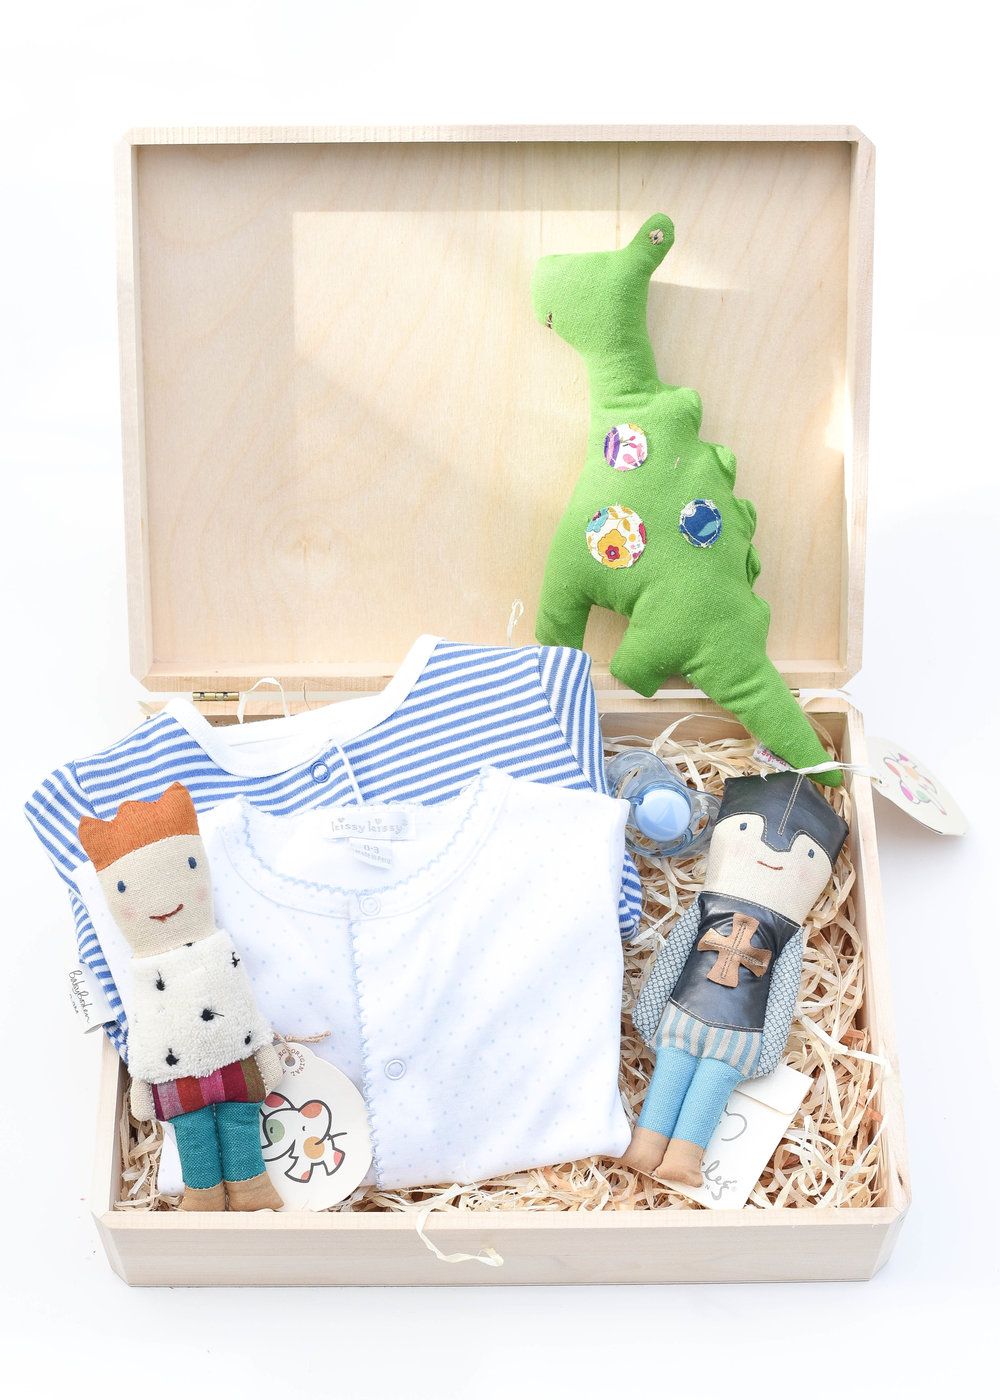 Playful Baby Gift Set - This curated set is the perfect mix of comfort and fun!  Versatile, quality pieces keep baby cozy while on the move, and these rattles are ones that will keep baby entertained for years to come, but act fast, as these rattles are discontinued and on final sale!  To purchase, click links below:L:R  | Prince Rattle | Reversible Stripe Cardigan | Pima Cotton Footed Playsuit | Dragon Rattle | Pacifier | Knight Rattle (can still be found here) |My go-to gift wrap this holiday, shown here:Unfinished Walnut Box (2 pack) | Aspen Wood Excelsior (BULK)Only needing to wrap one present?Individual Unfinished Walnut Box | Aspen Wood Excelsior (4 oz bag)